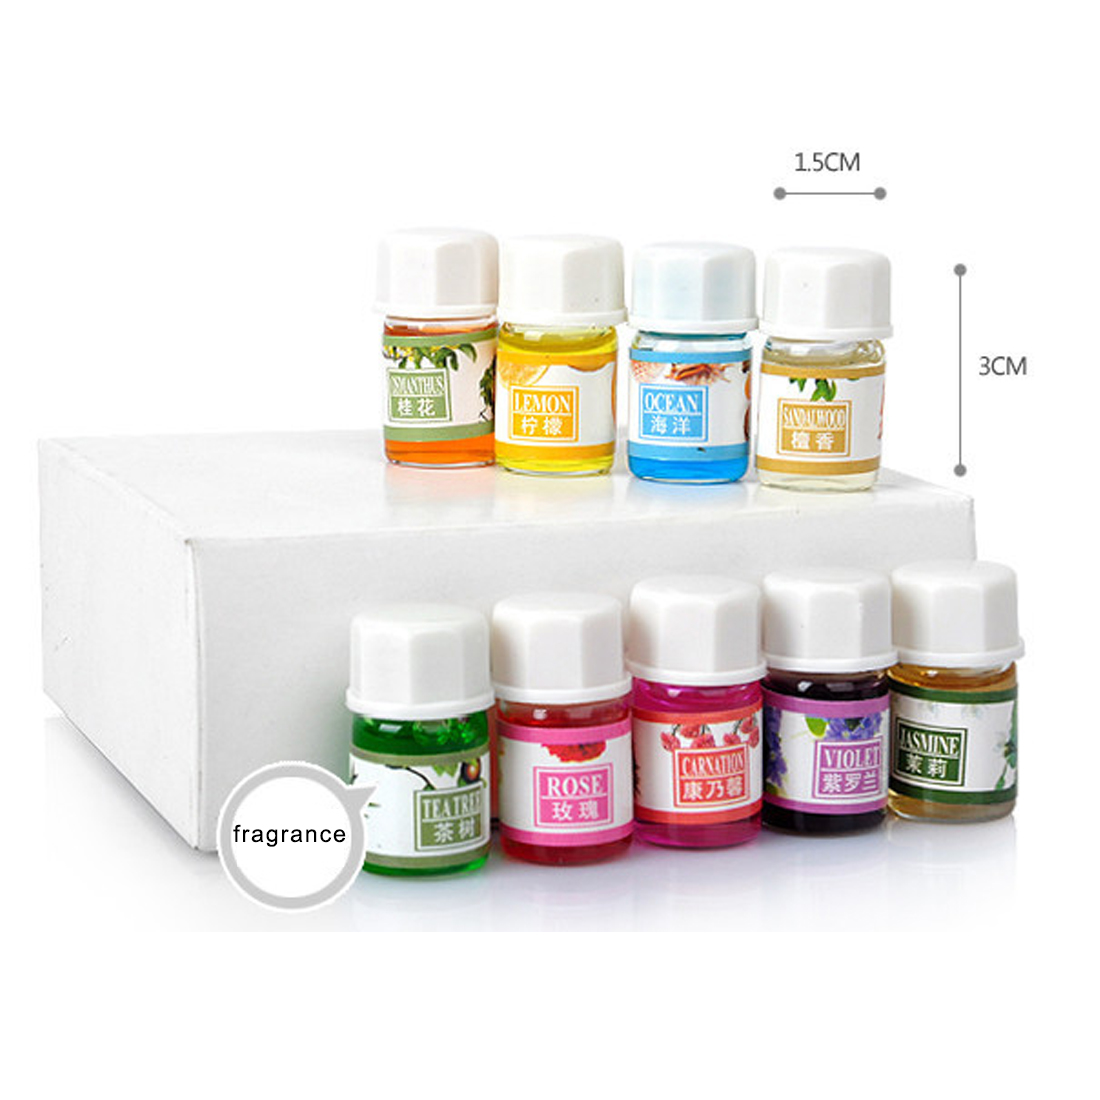 36PCS/Set 3ml 12 Kinds Natural Plants Aromatic Fragrance Essential Oil Water-soluble Flavor Oil Spa Massage Bath Aromatherapy